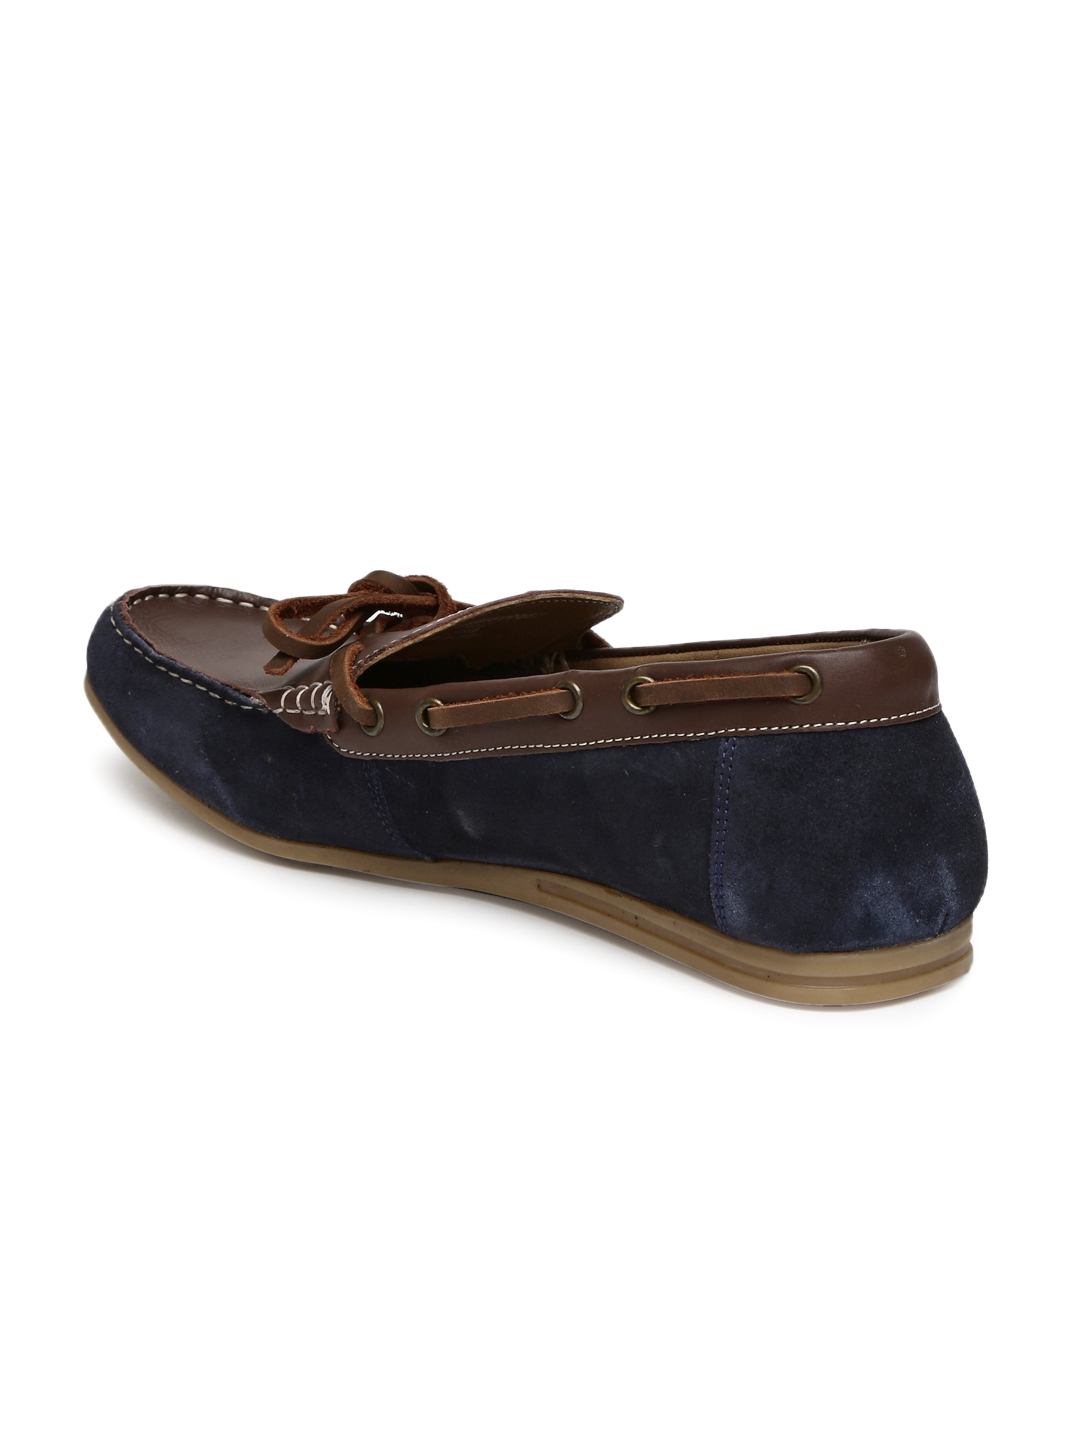 Buy Van Heusen Men Brown   Navy Blue Leather Casual Shoes - Casual ... 6ab9e4ed5